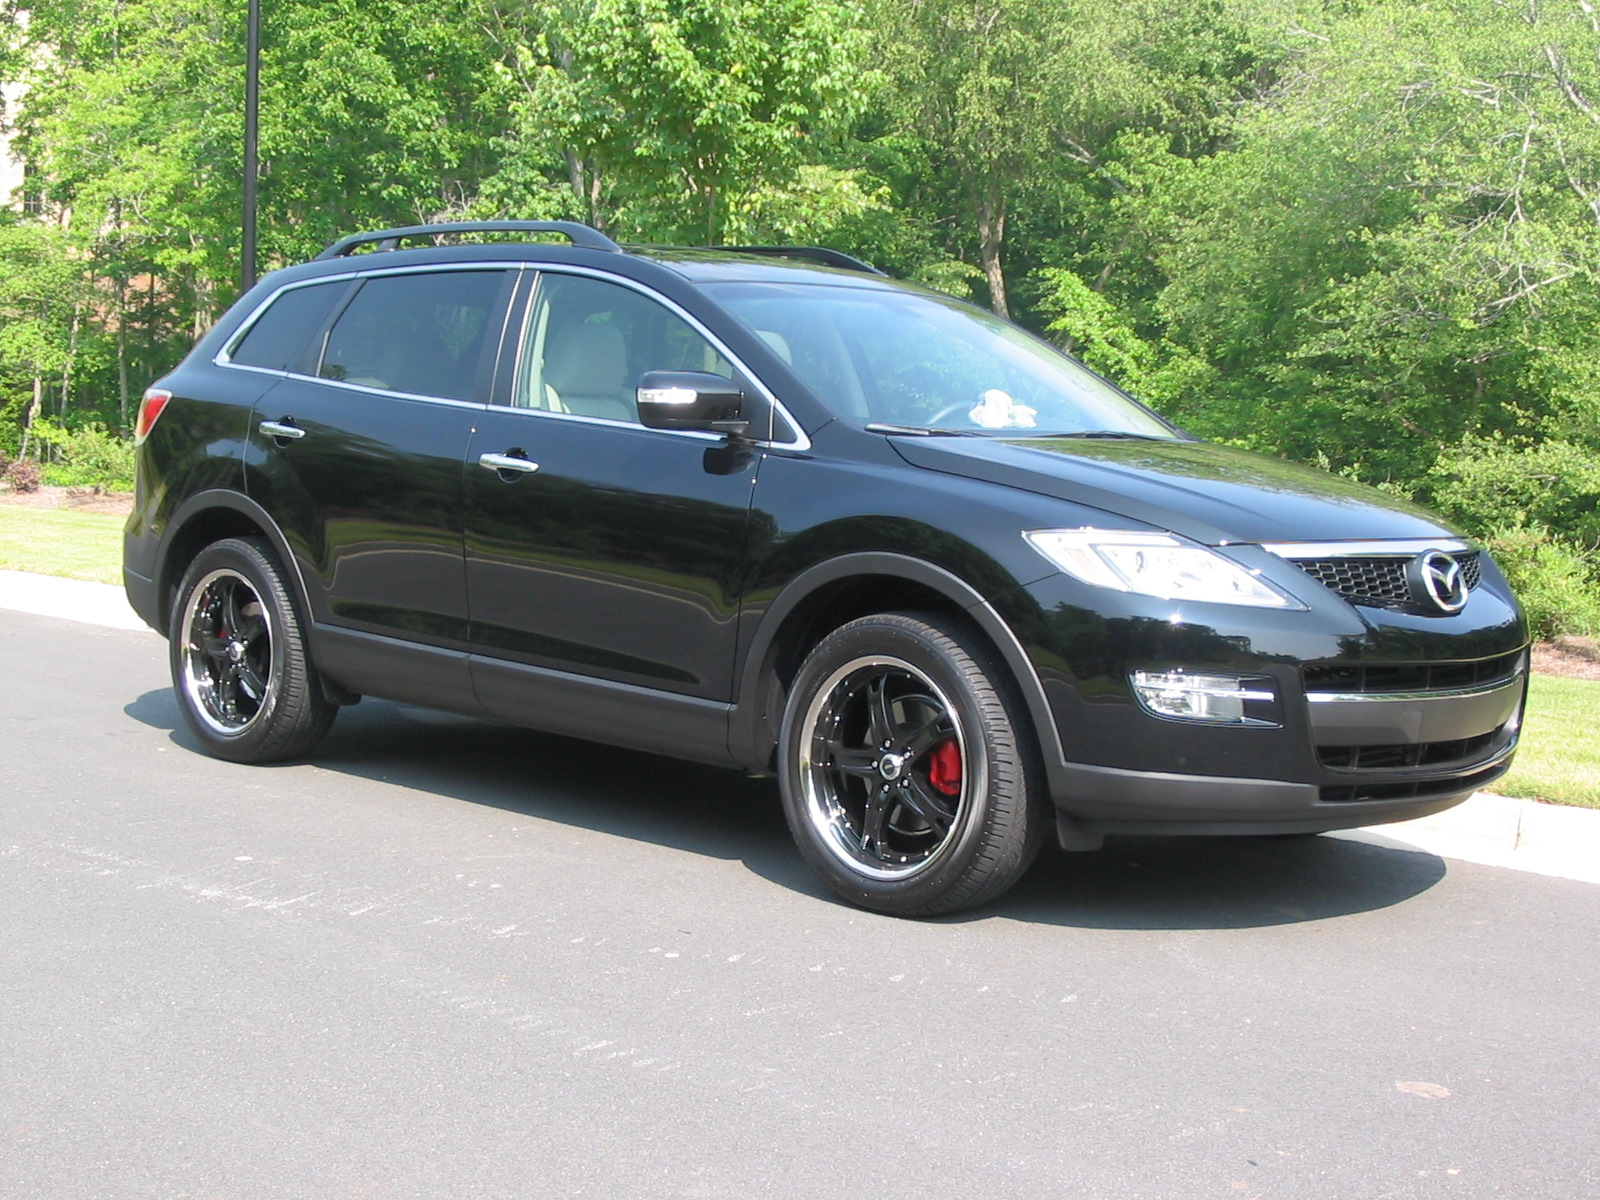 2007 Mazda CX-9 Grand Touring picture